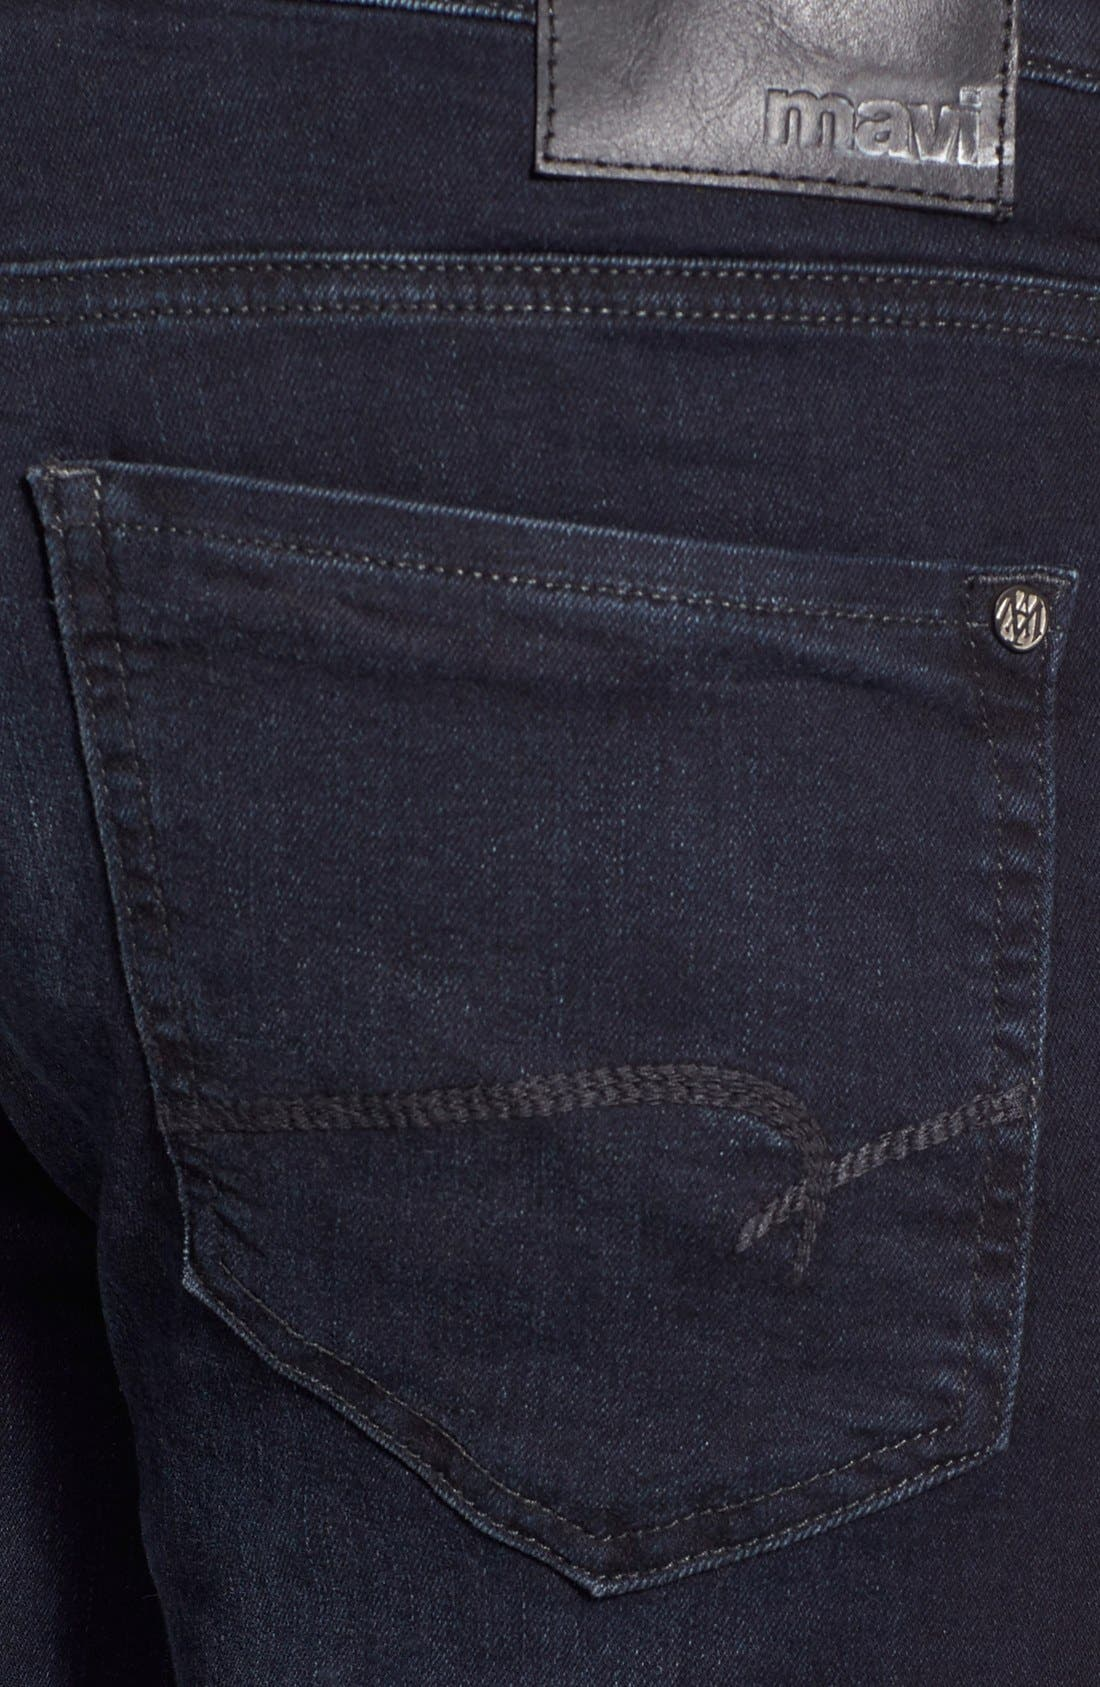 Matt Relaxed Fit Jeans,                             Alternate thumbnail 6, color,                             INK WILLIAMSBURG